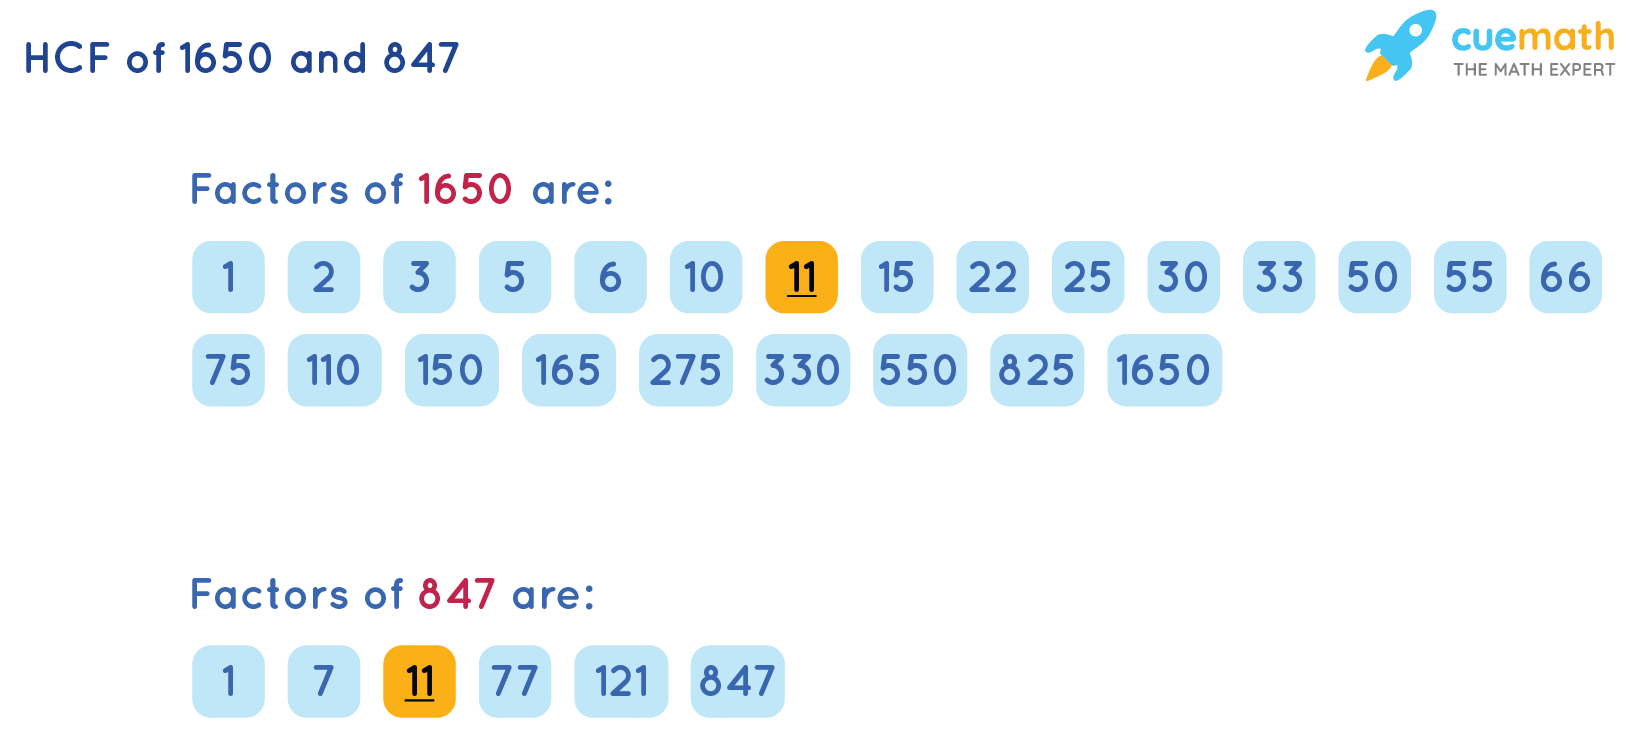 HCF of 1650 and 847 by Listing Factors